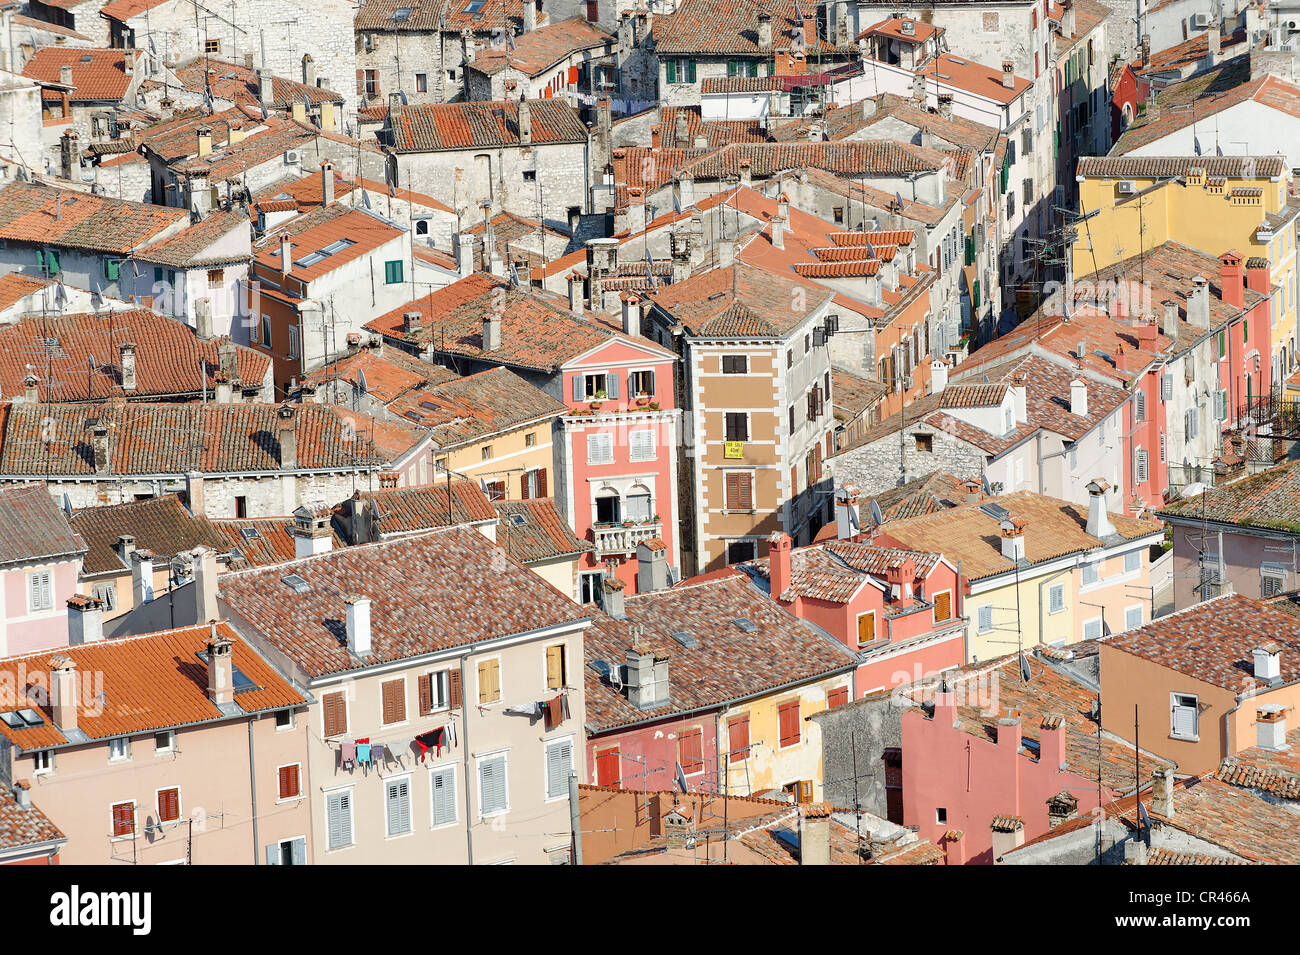 View across the rooftops of Rovinj, Istria, Croatia, Europe - Stock Image